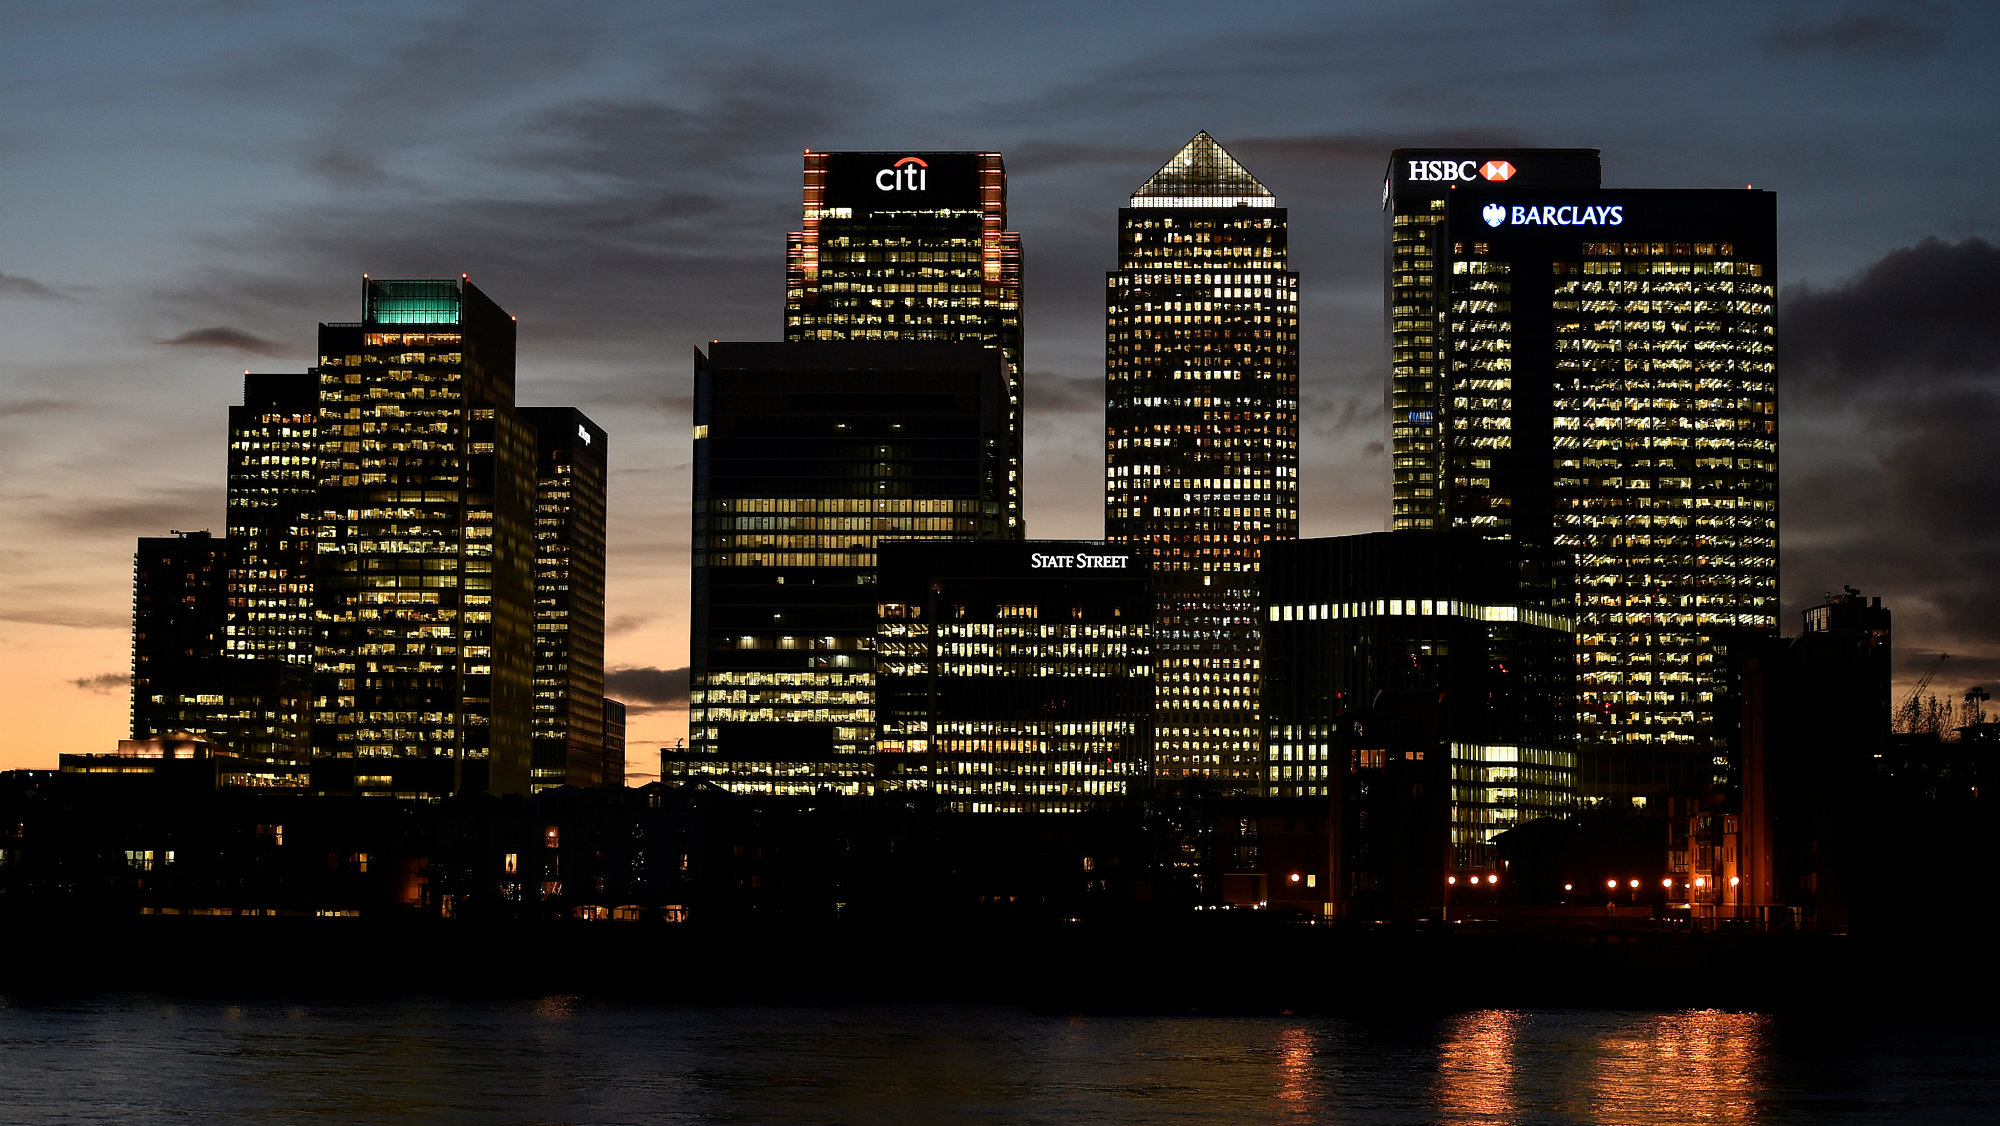 The Canary Wharf financial district is seen at dusk in east London, Britain.